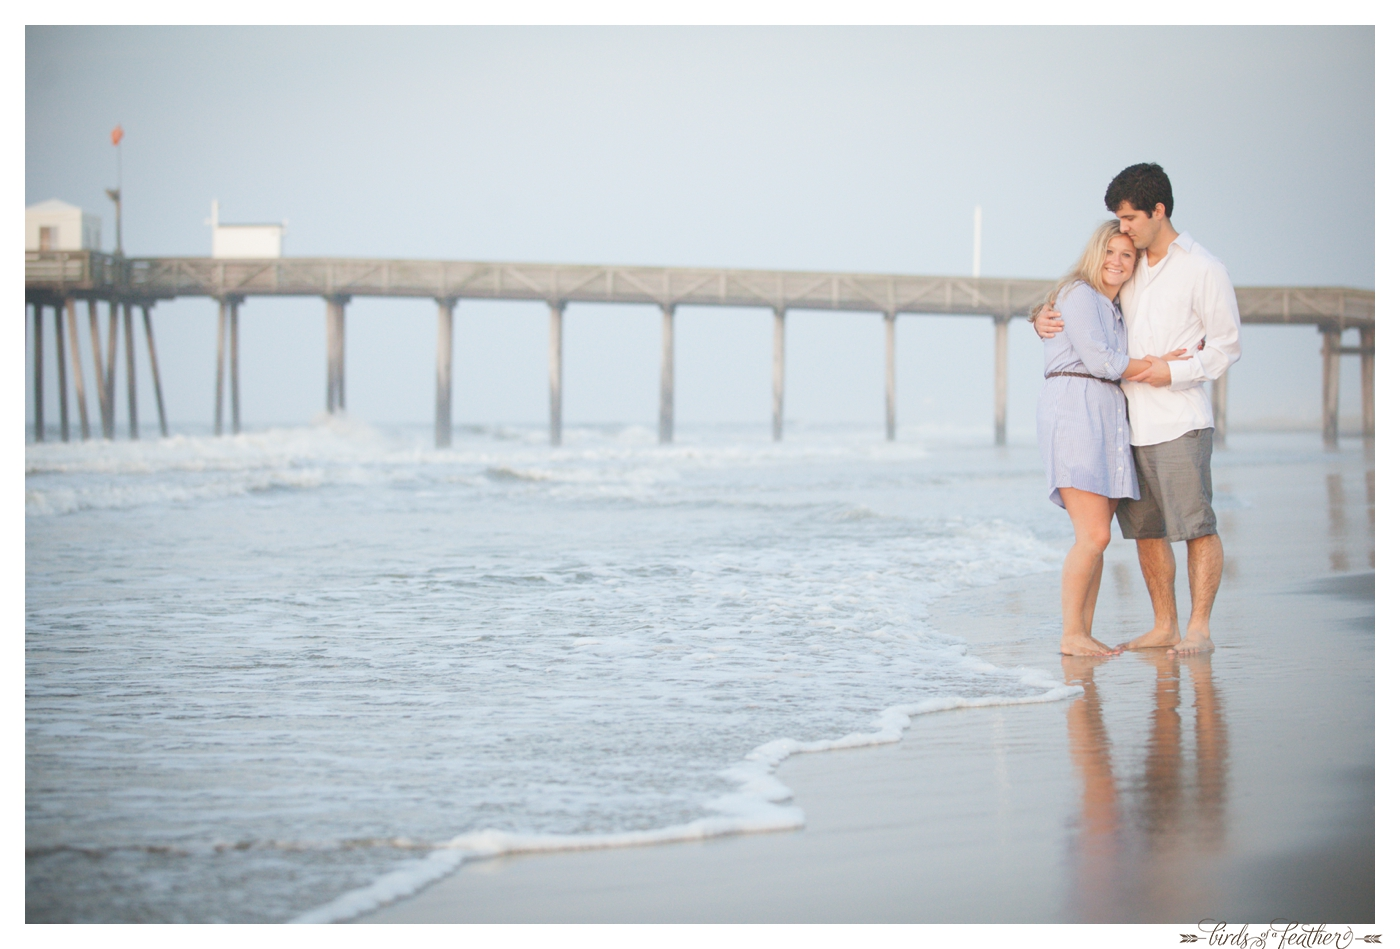 OCNJ Wedding Photographer  Ocean City NJ Wedding Phtoography